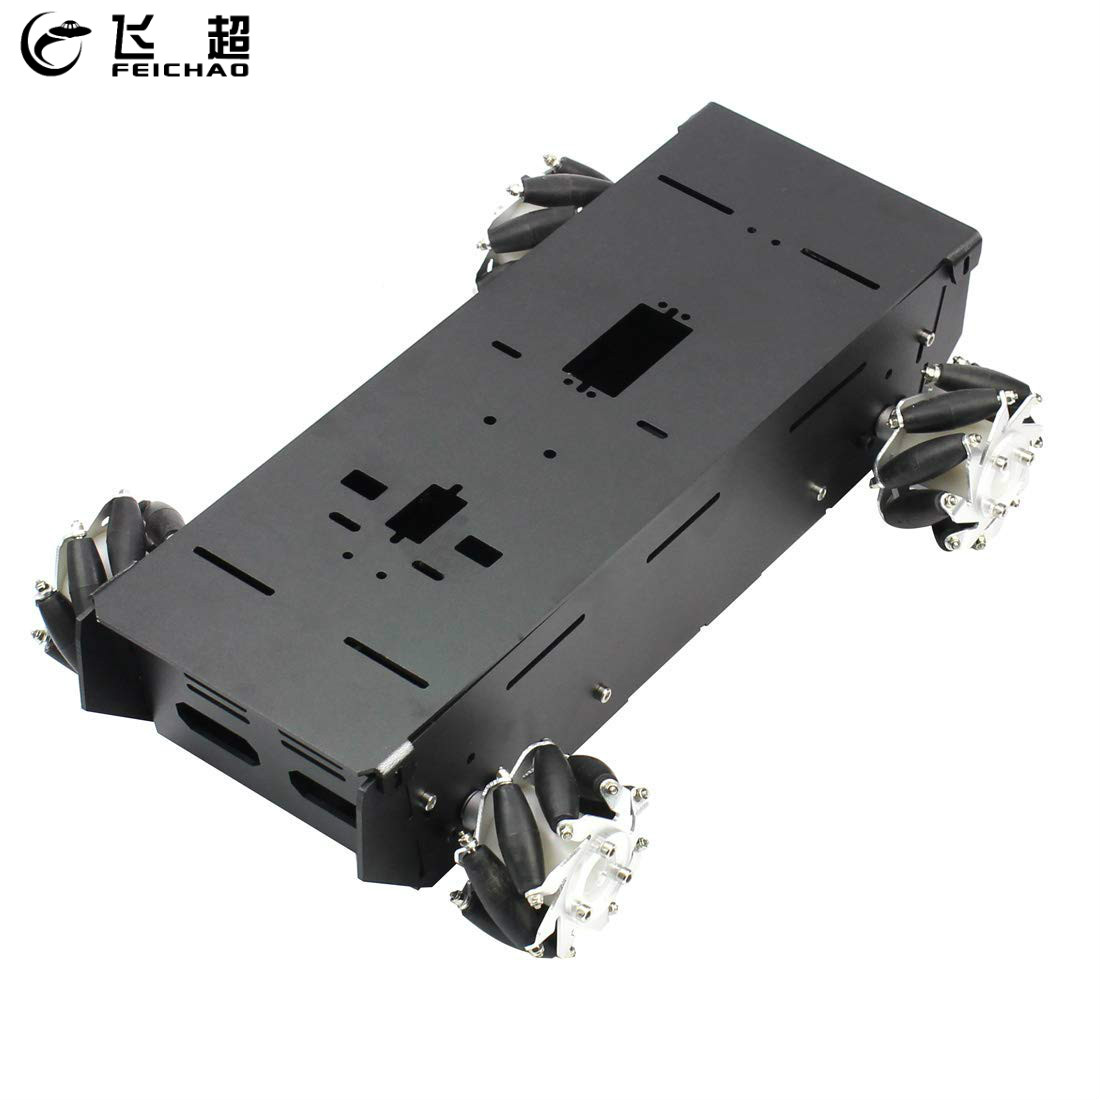 4WD RC Smart Car Chassis For Arduino Platform with 12V Motor DIY 4 Wheel Robot Accessory doit cool and new 6wd robot smart car chassis big load large bearing chassis with motor 6v150rpm wheel skid diy rc toy